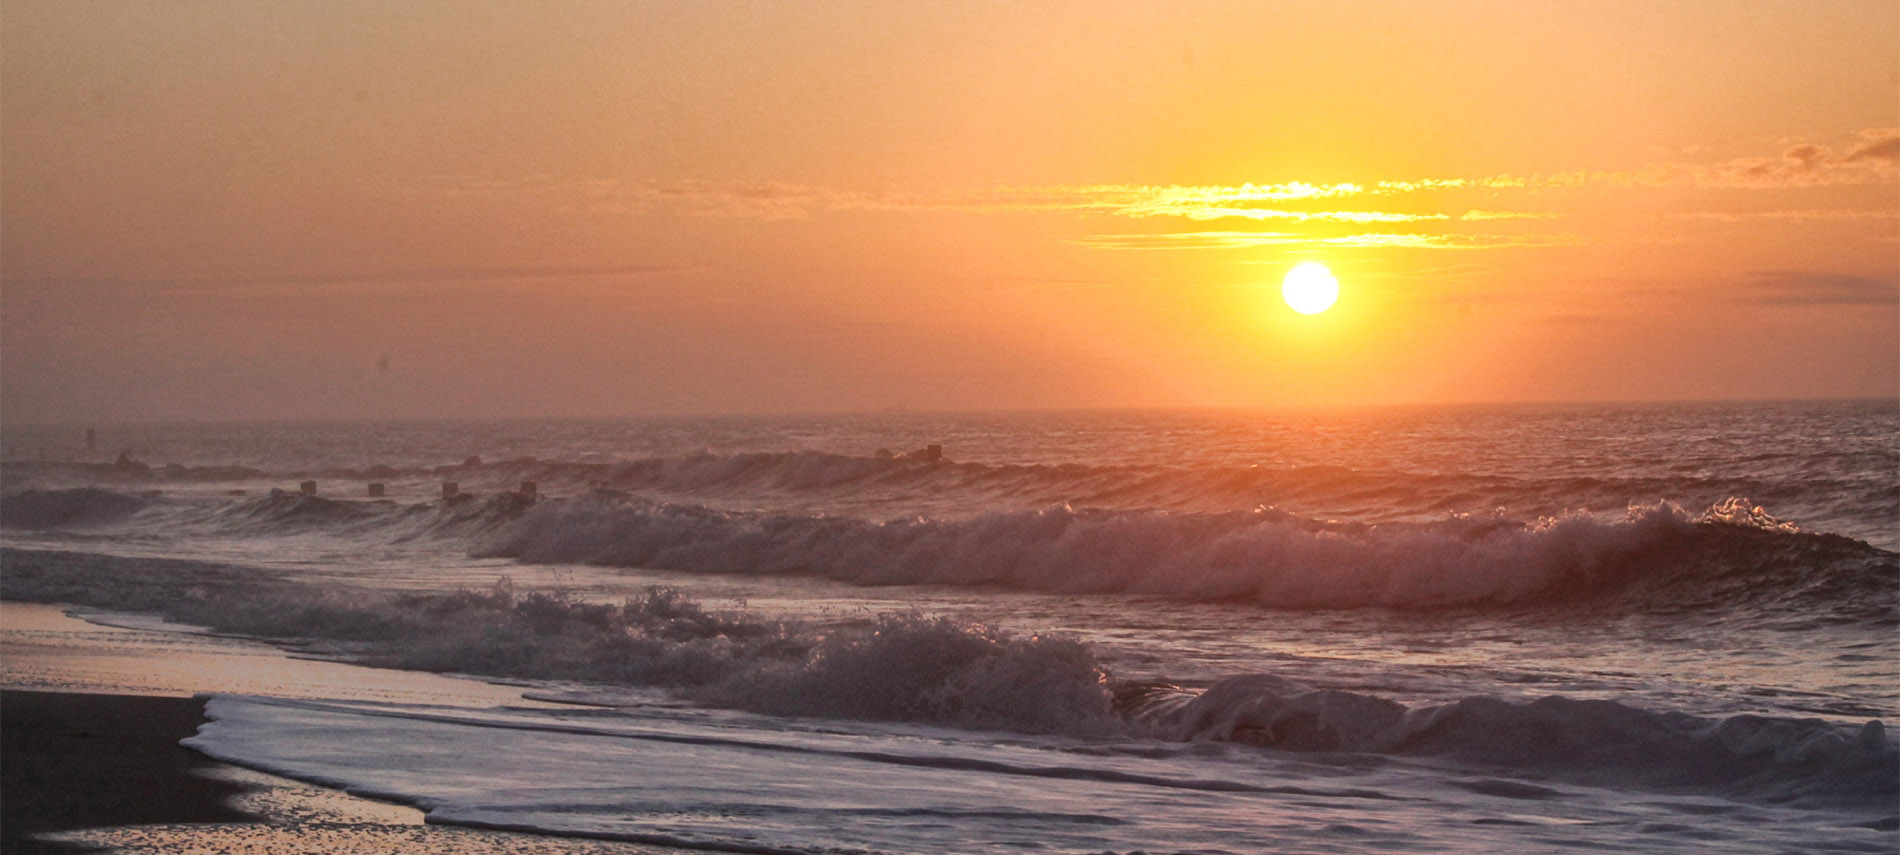 The sun sets in a ball of blazing orange over a restless ocean of waves on the beach.